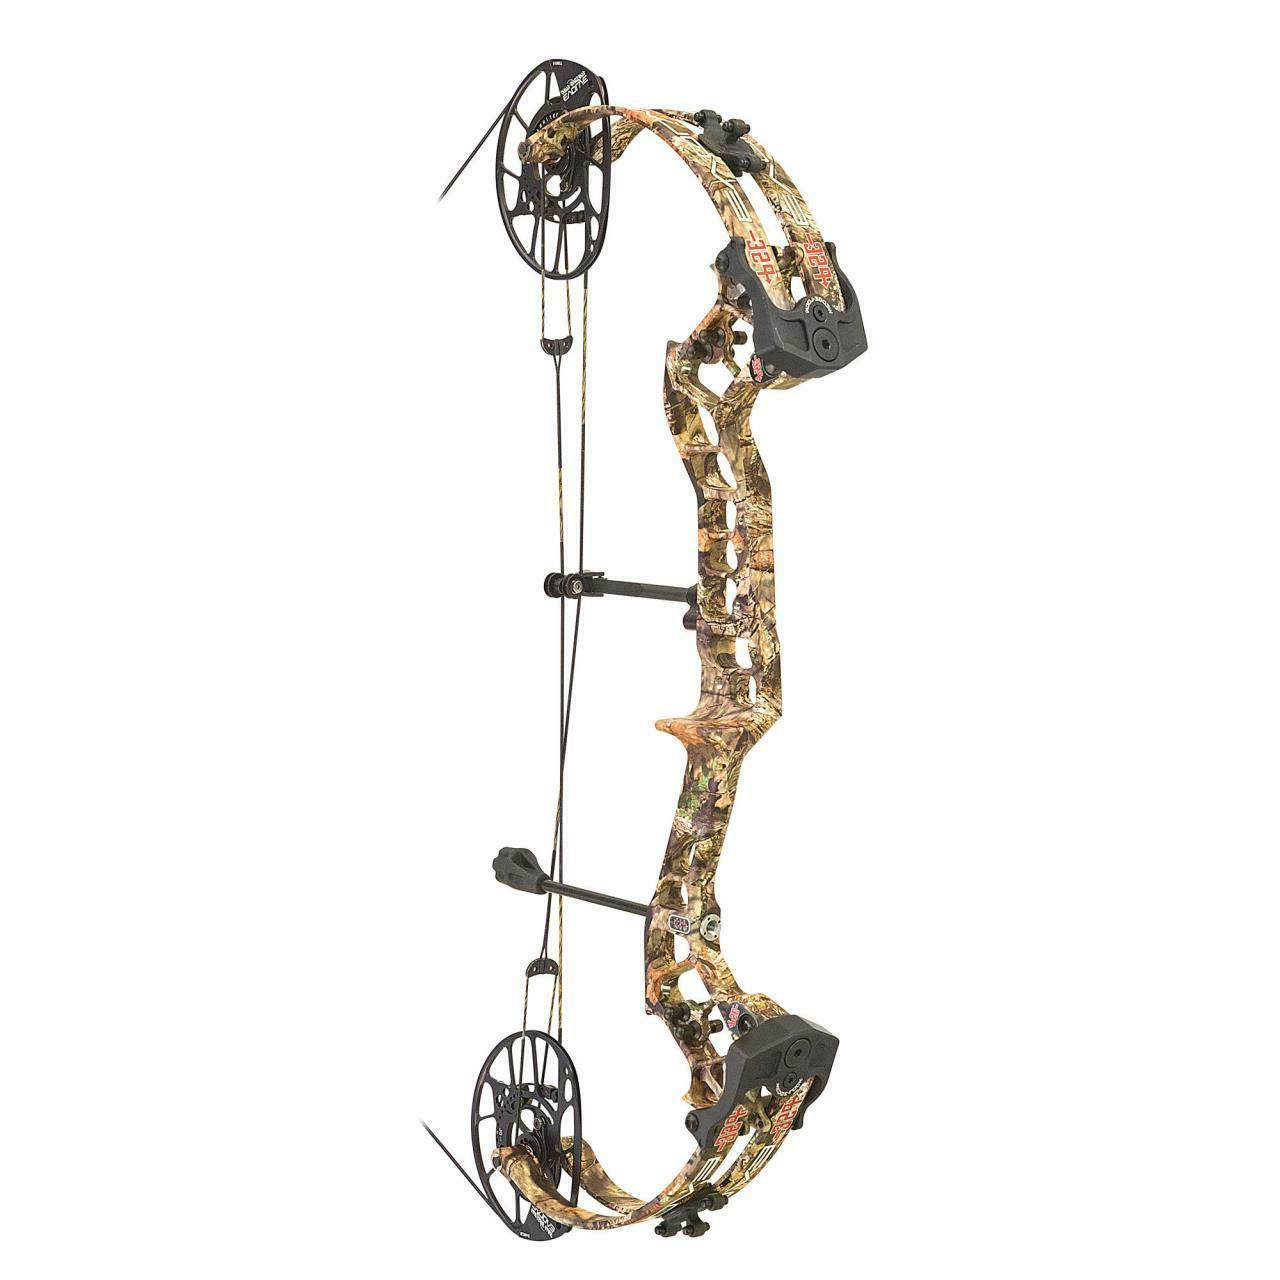 evolve 28 country camo 70 lbs right